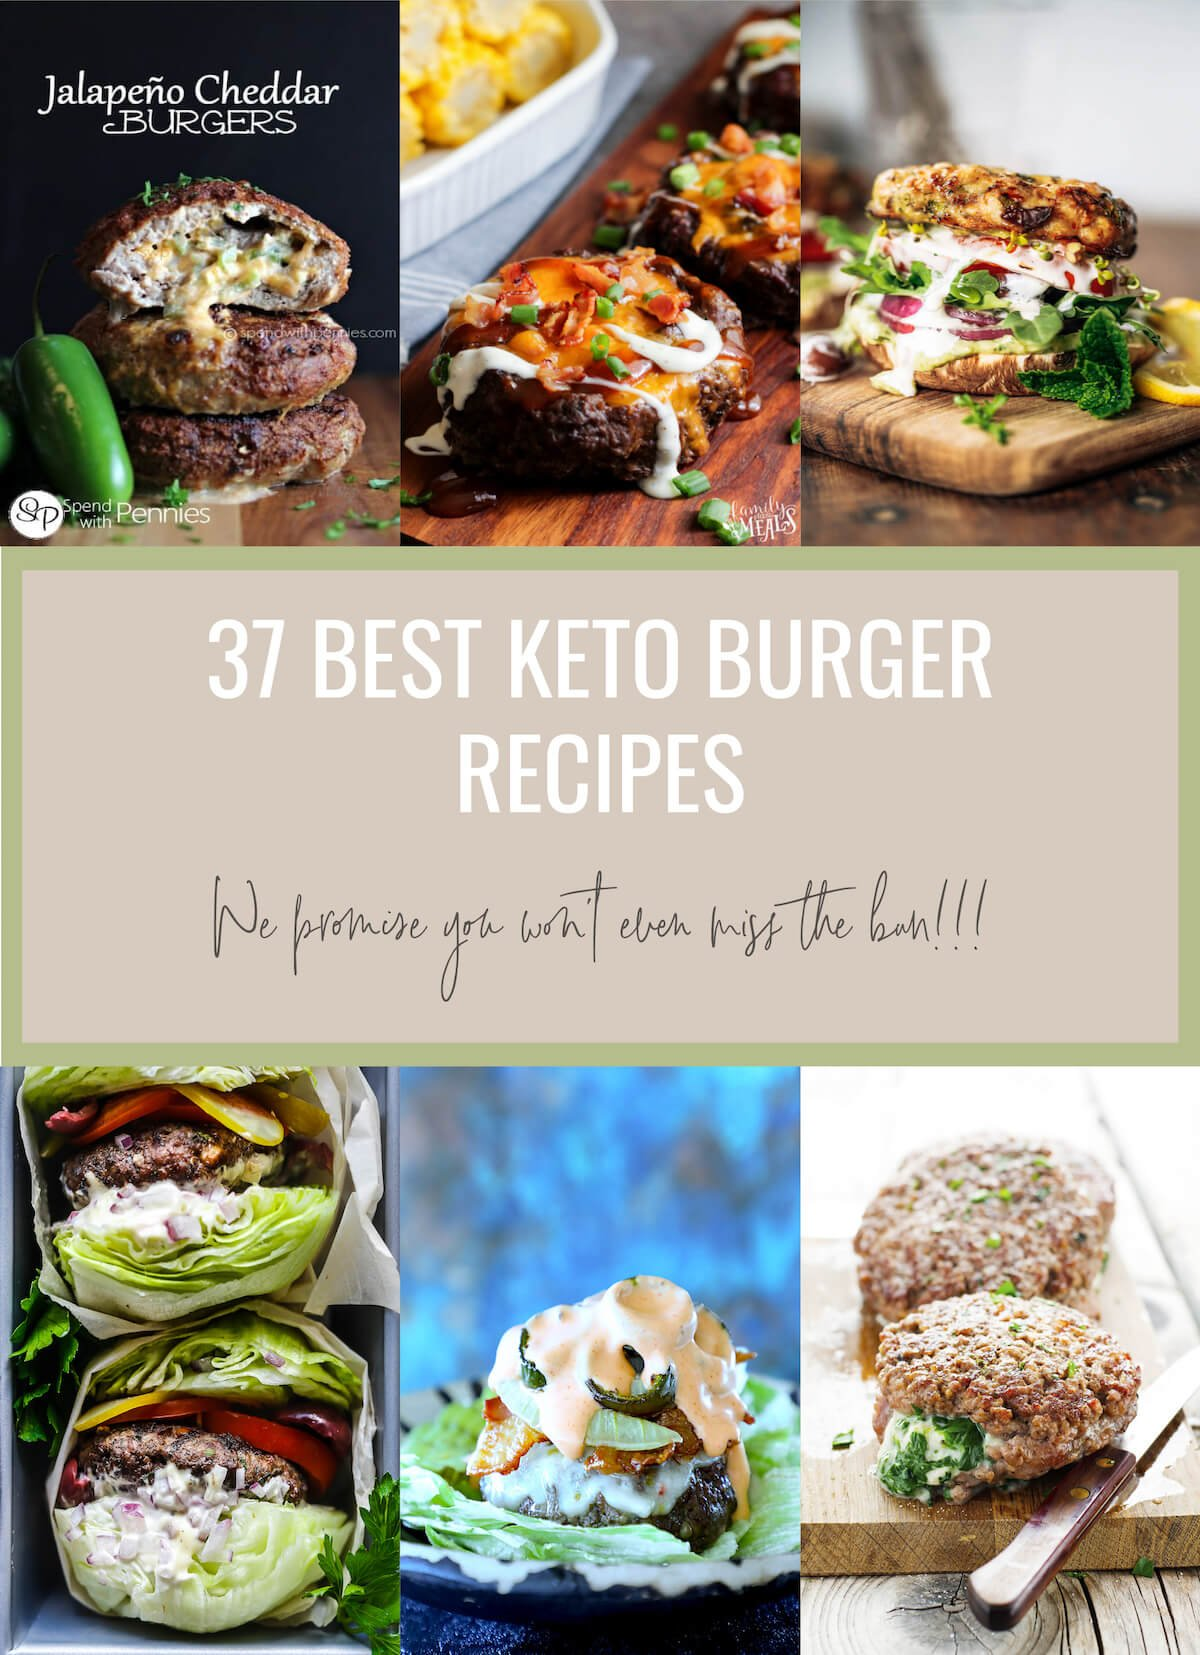 When you're craving a big juicy low carb burger, this list of the 37 Best Keto Burger Recipes will be right up your alley!  We promise that you won't even miss the bun!